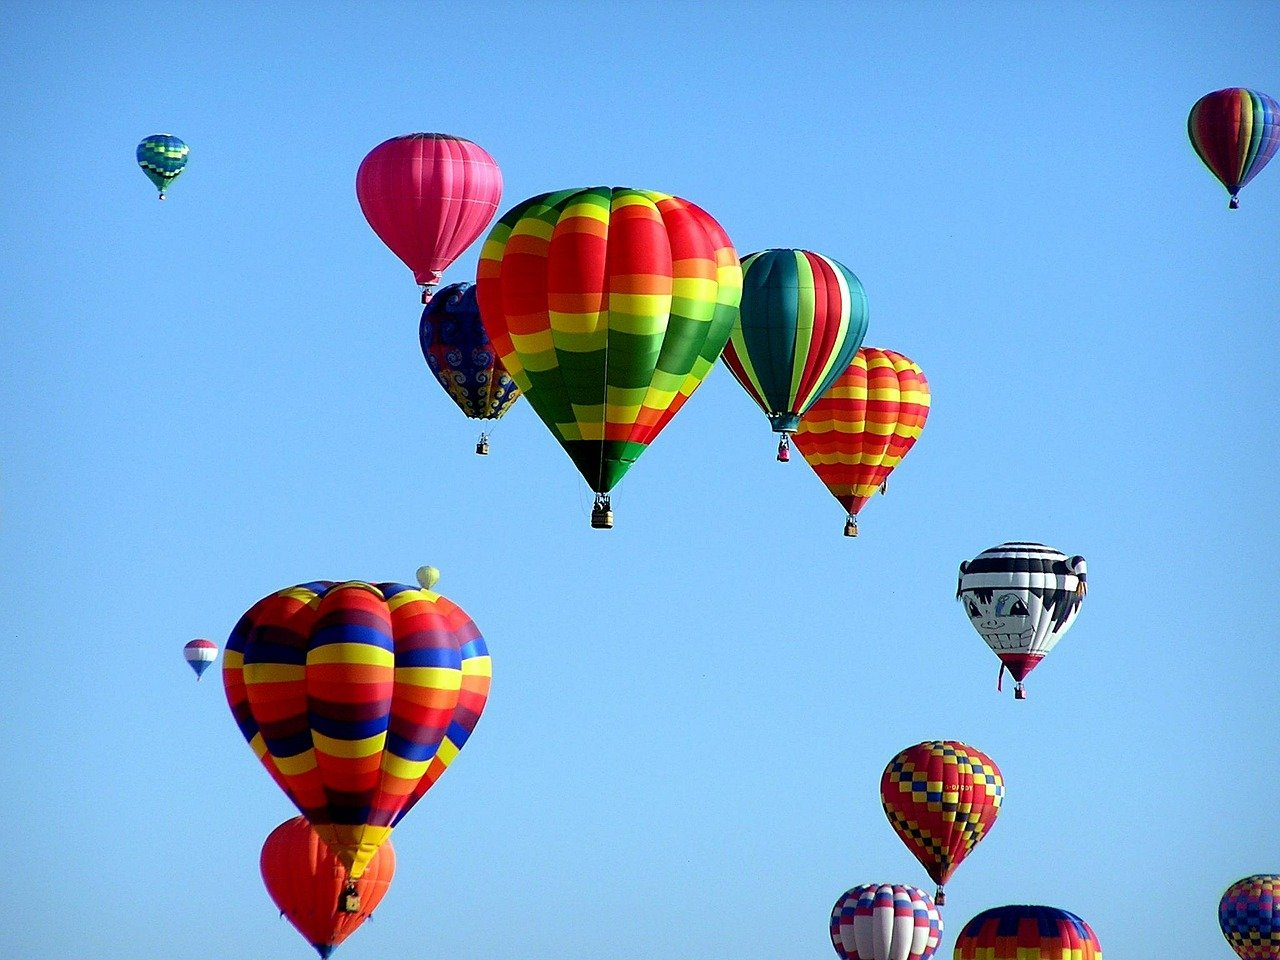 colorful hot air balloons flying in the sky